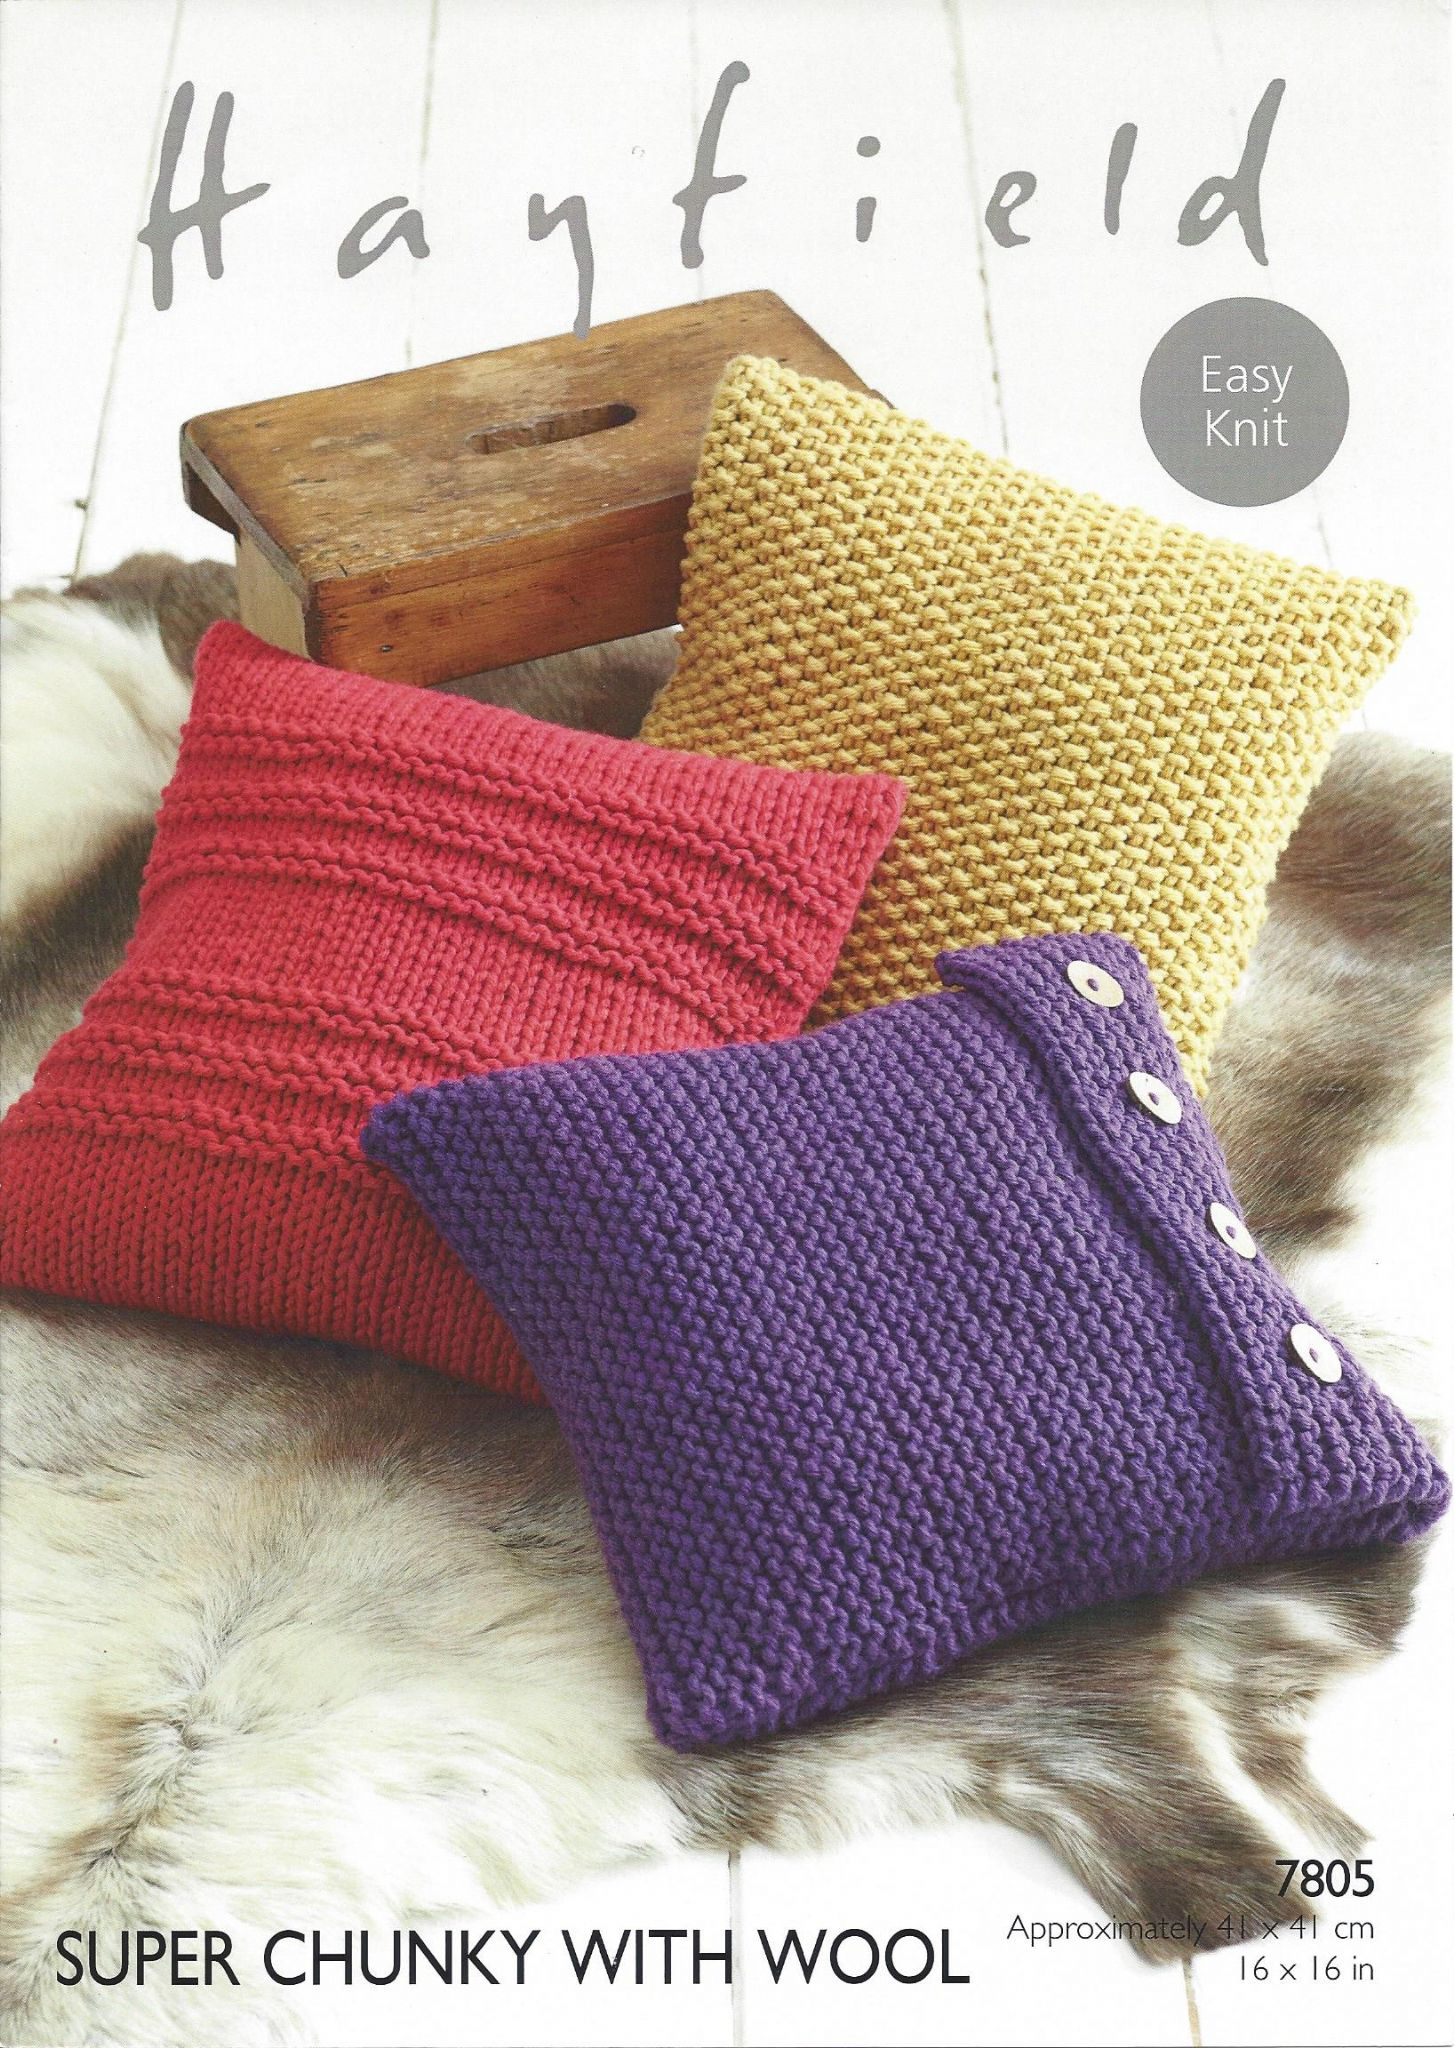 Hayfield Super Chunky with Wool - 7805 Cushions Knitting Pattern